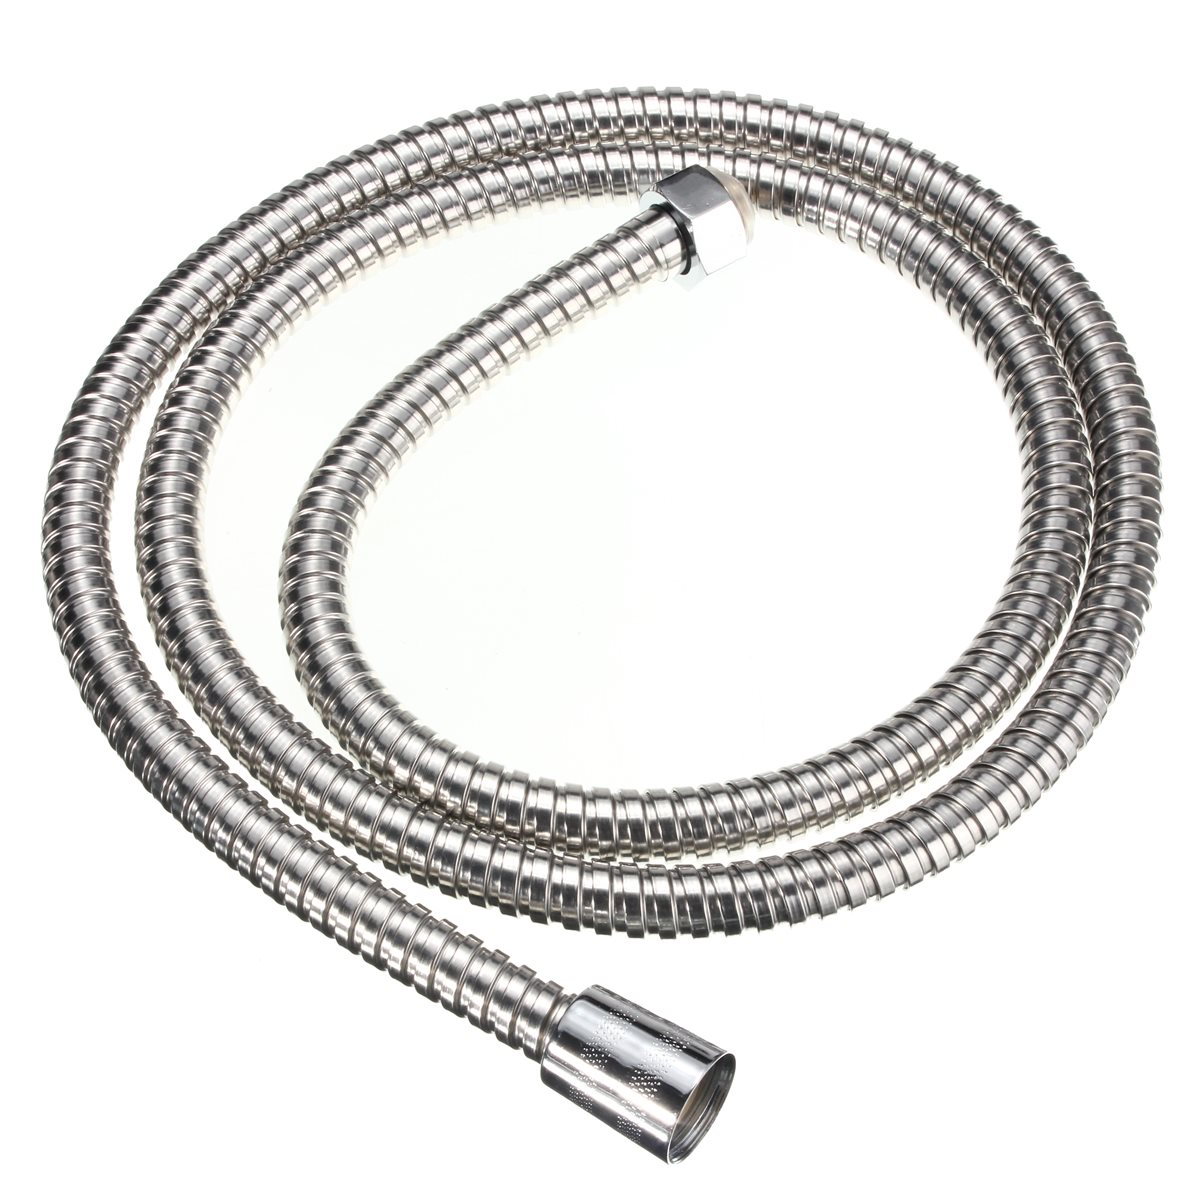 1.5m Plumbing Hoses Stainless Steel Bathroom Shower Head Hose Durable Bath Showerhead Water Pipe Tube Hose viborg top quality 60cm sus304 stainless steel flexible braided water supply hose for water heater connector pipe tube